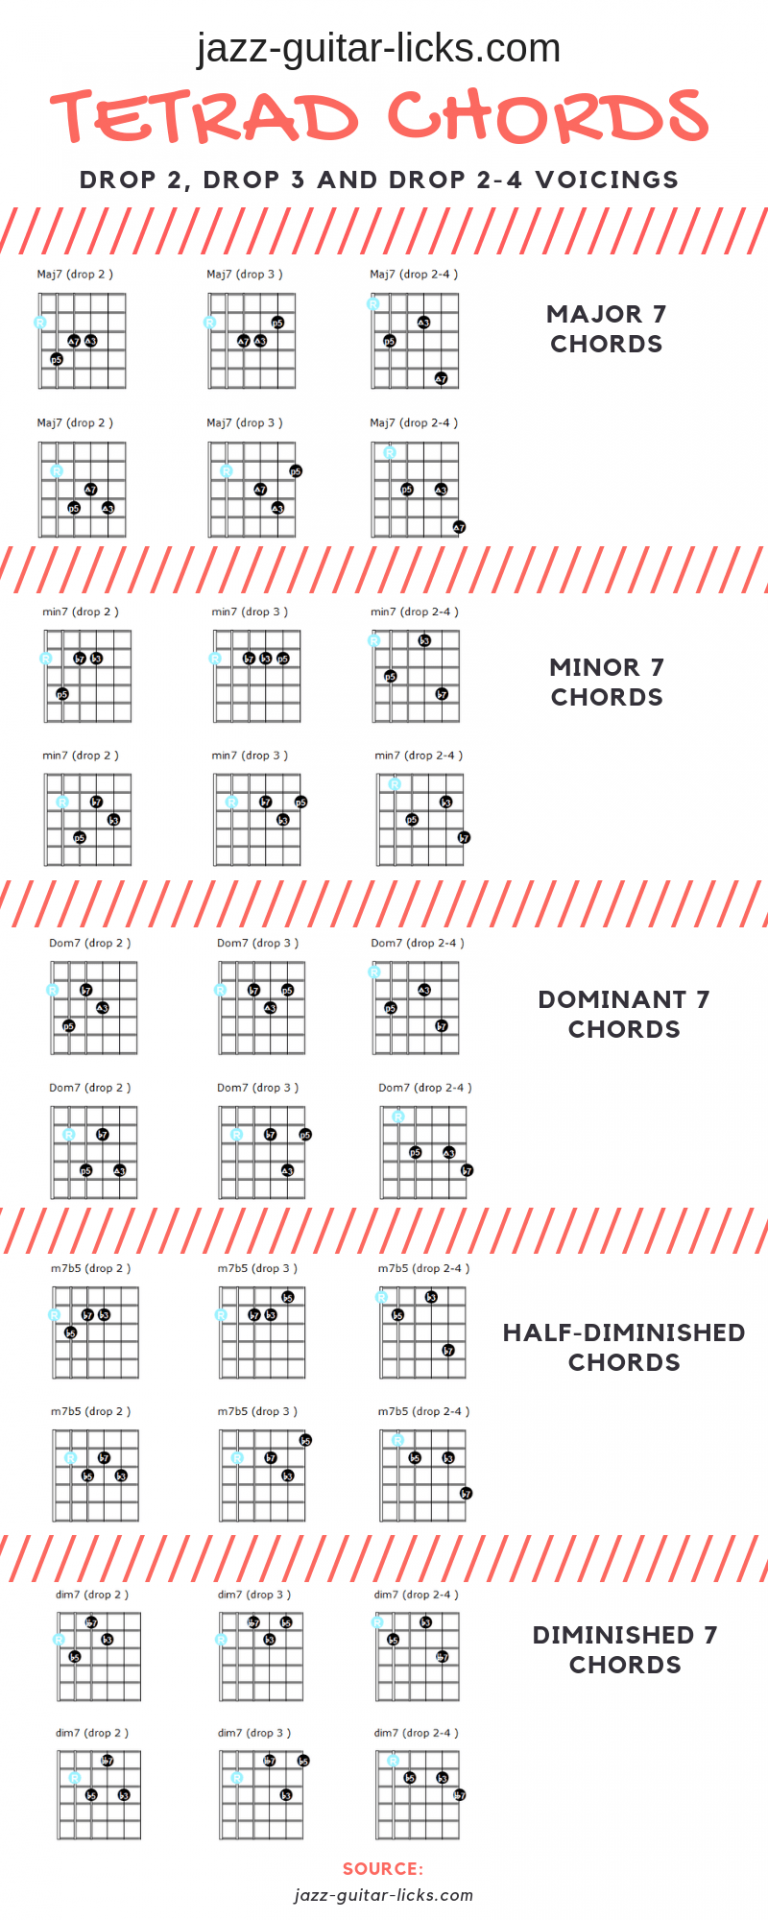 Tetrad chords for guitar - Drop 2, Drop 3, Drop 2-4 voicings